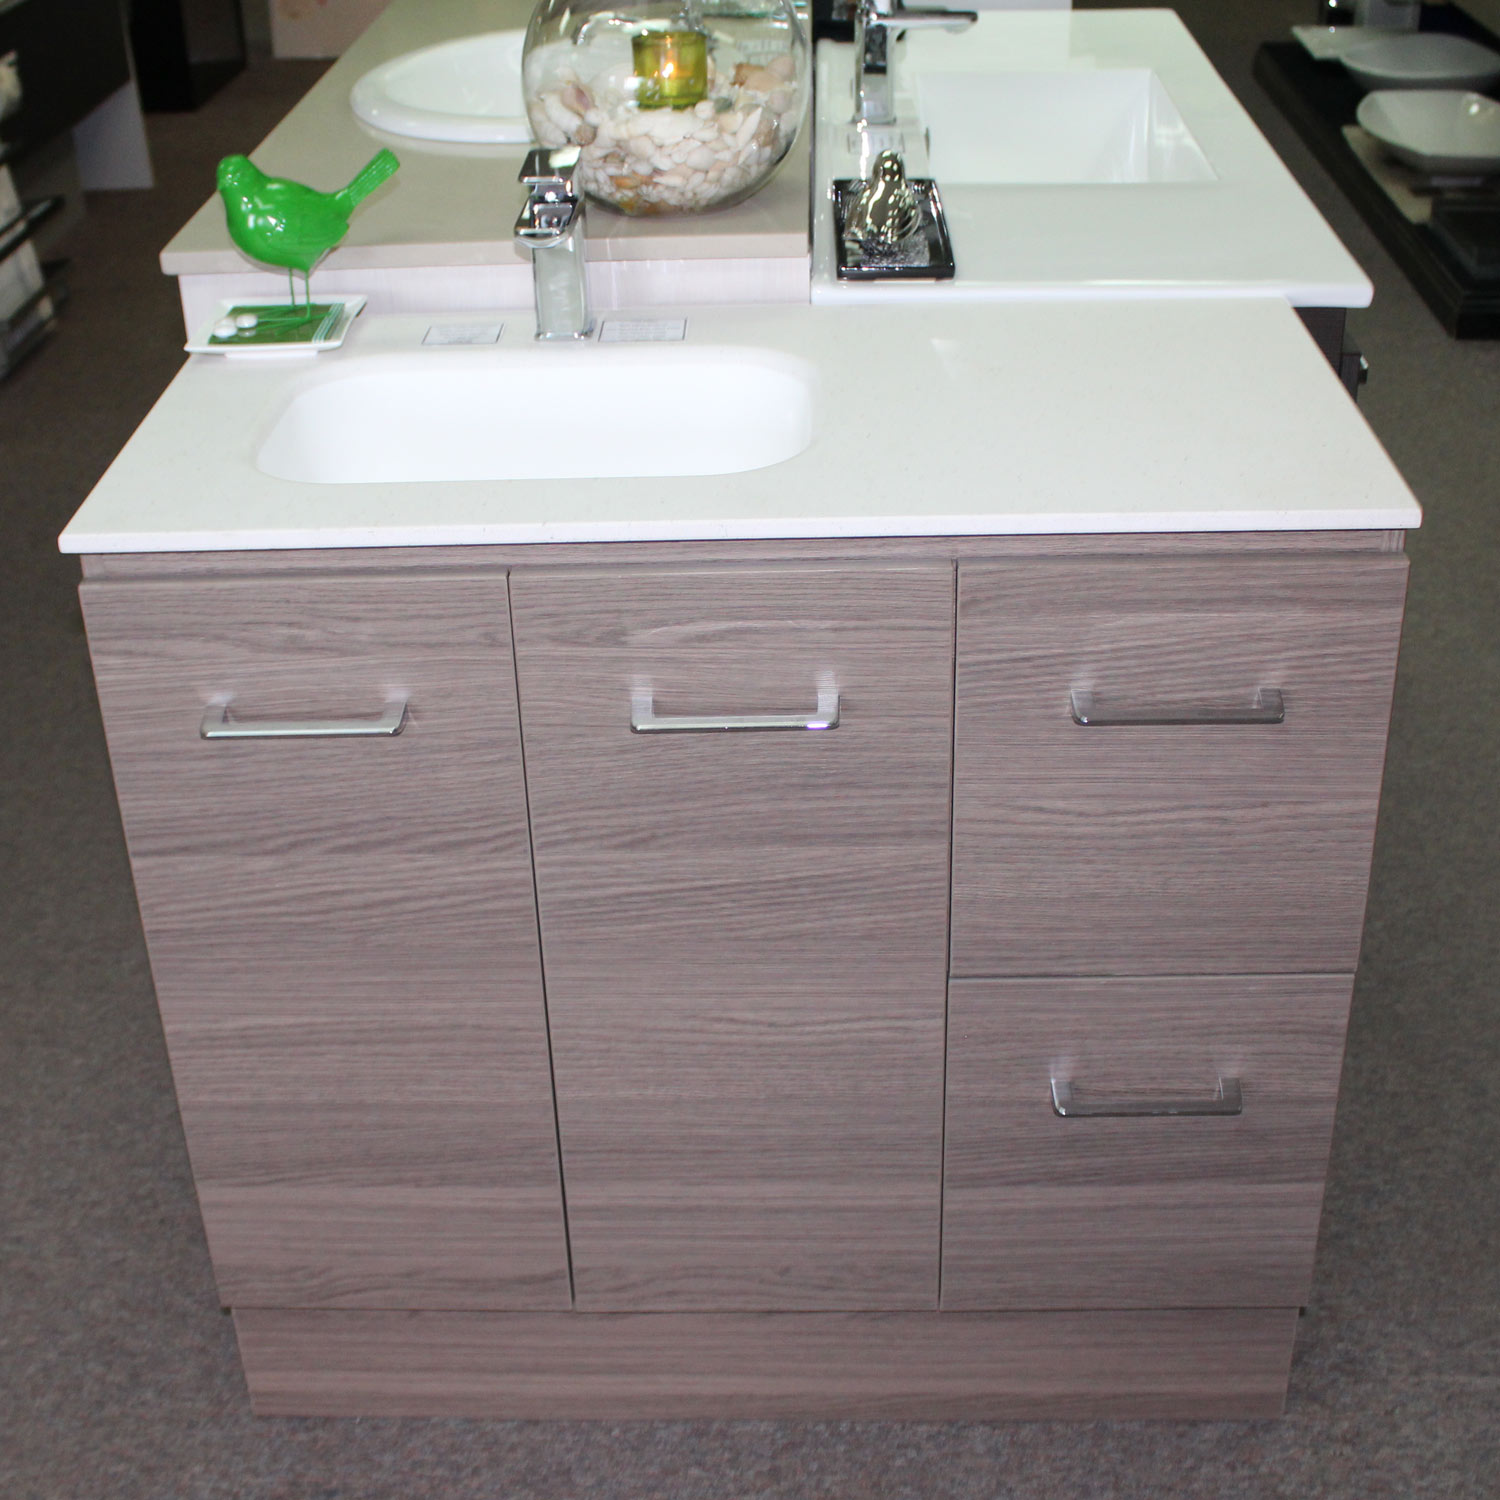 Genoa Vanity 900mm With Integrated Bowl Bathroom Supplies In Brisbane